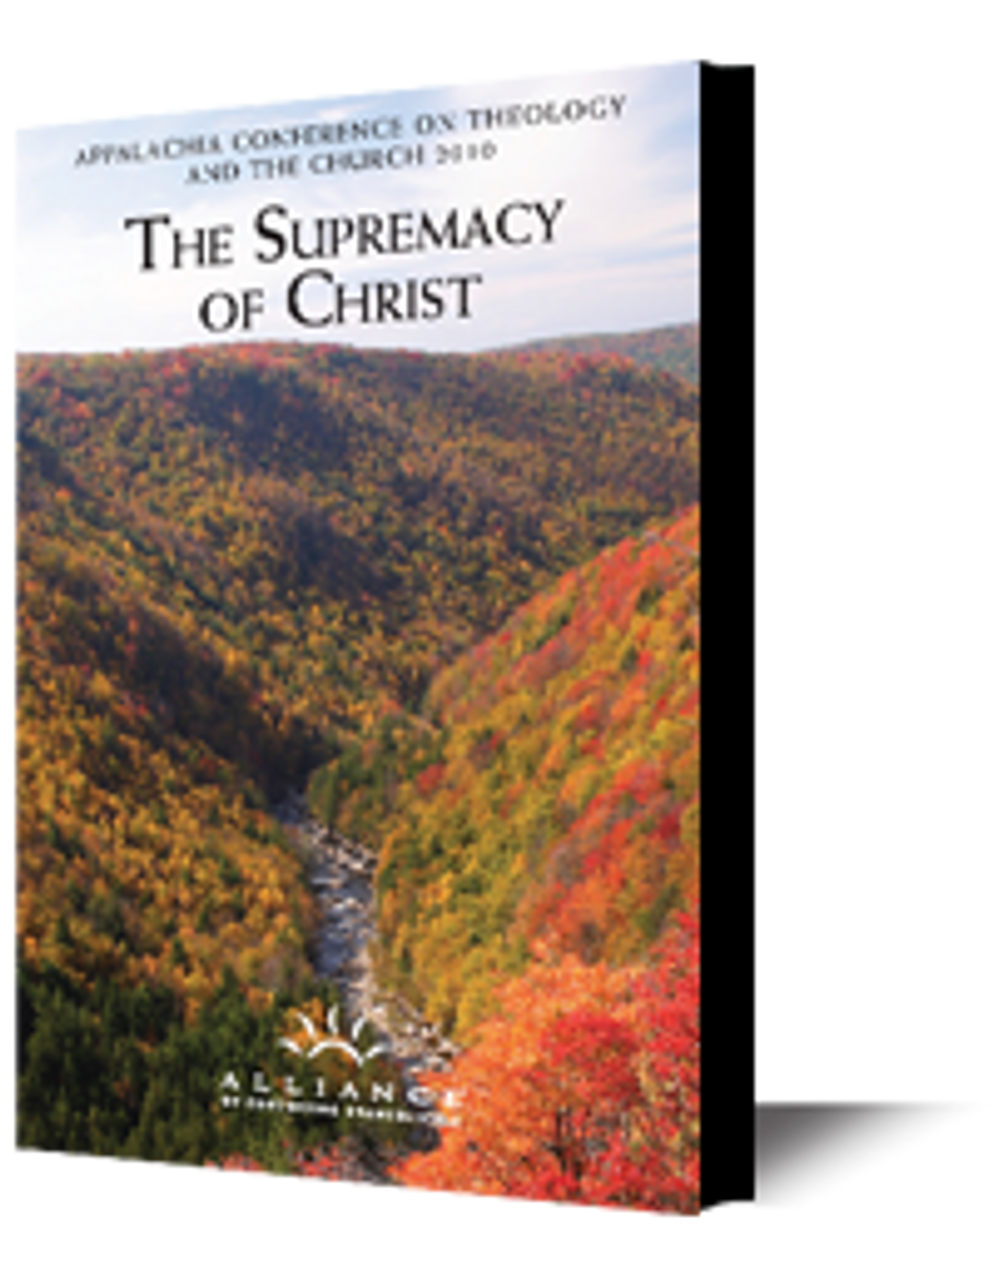 The Supremacy of Christ (CD Set)